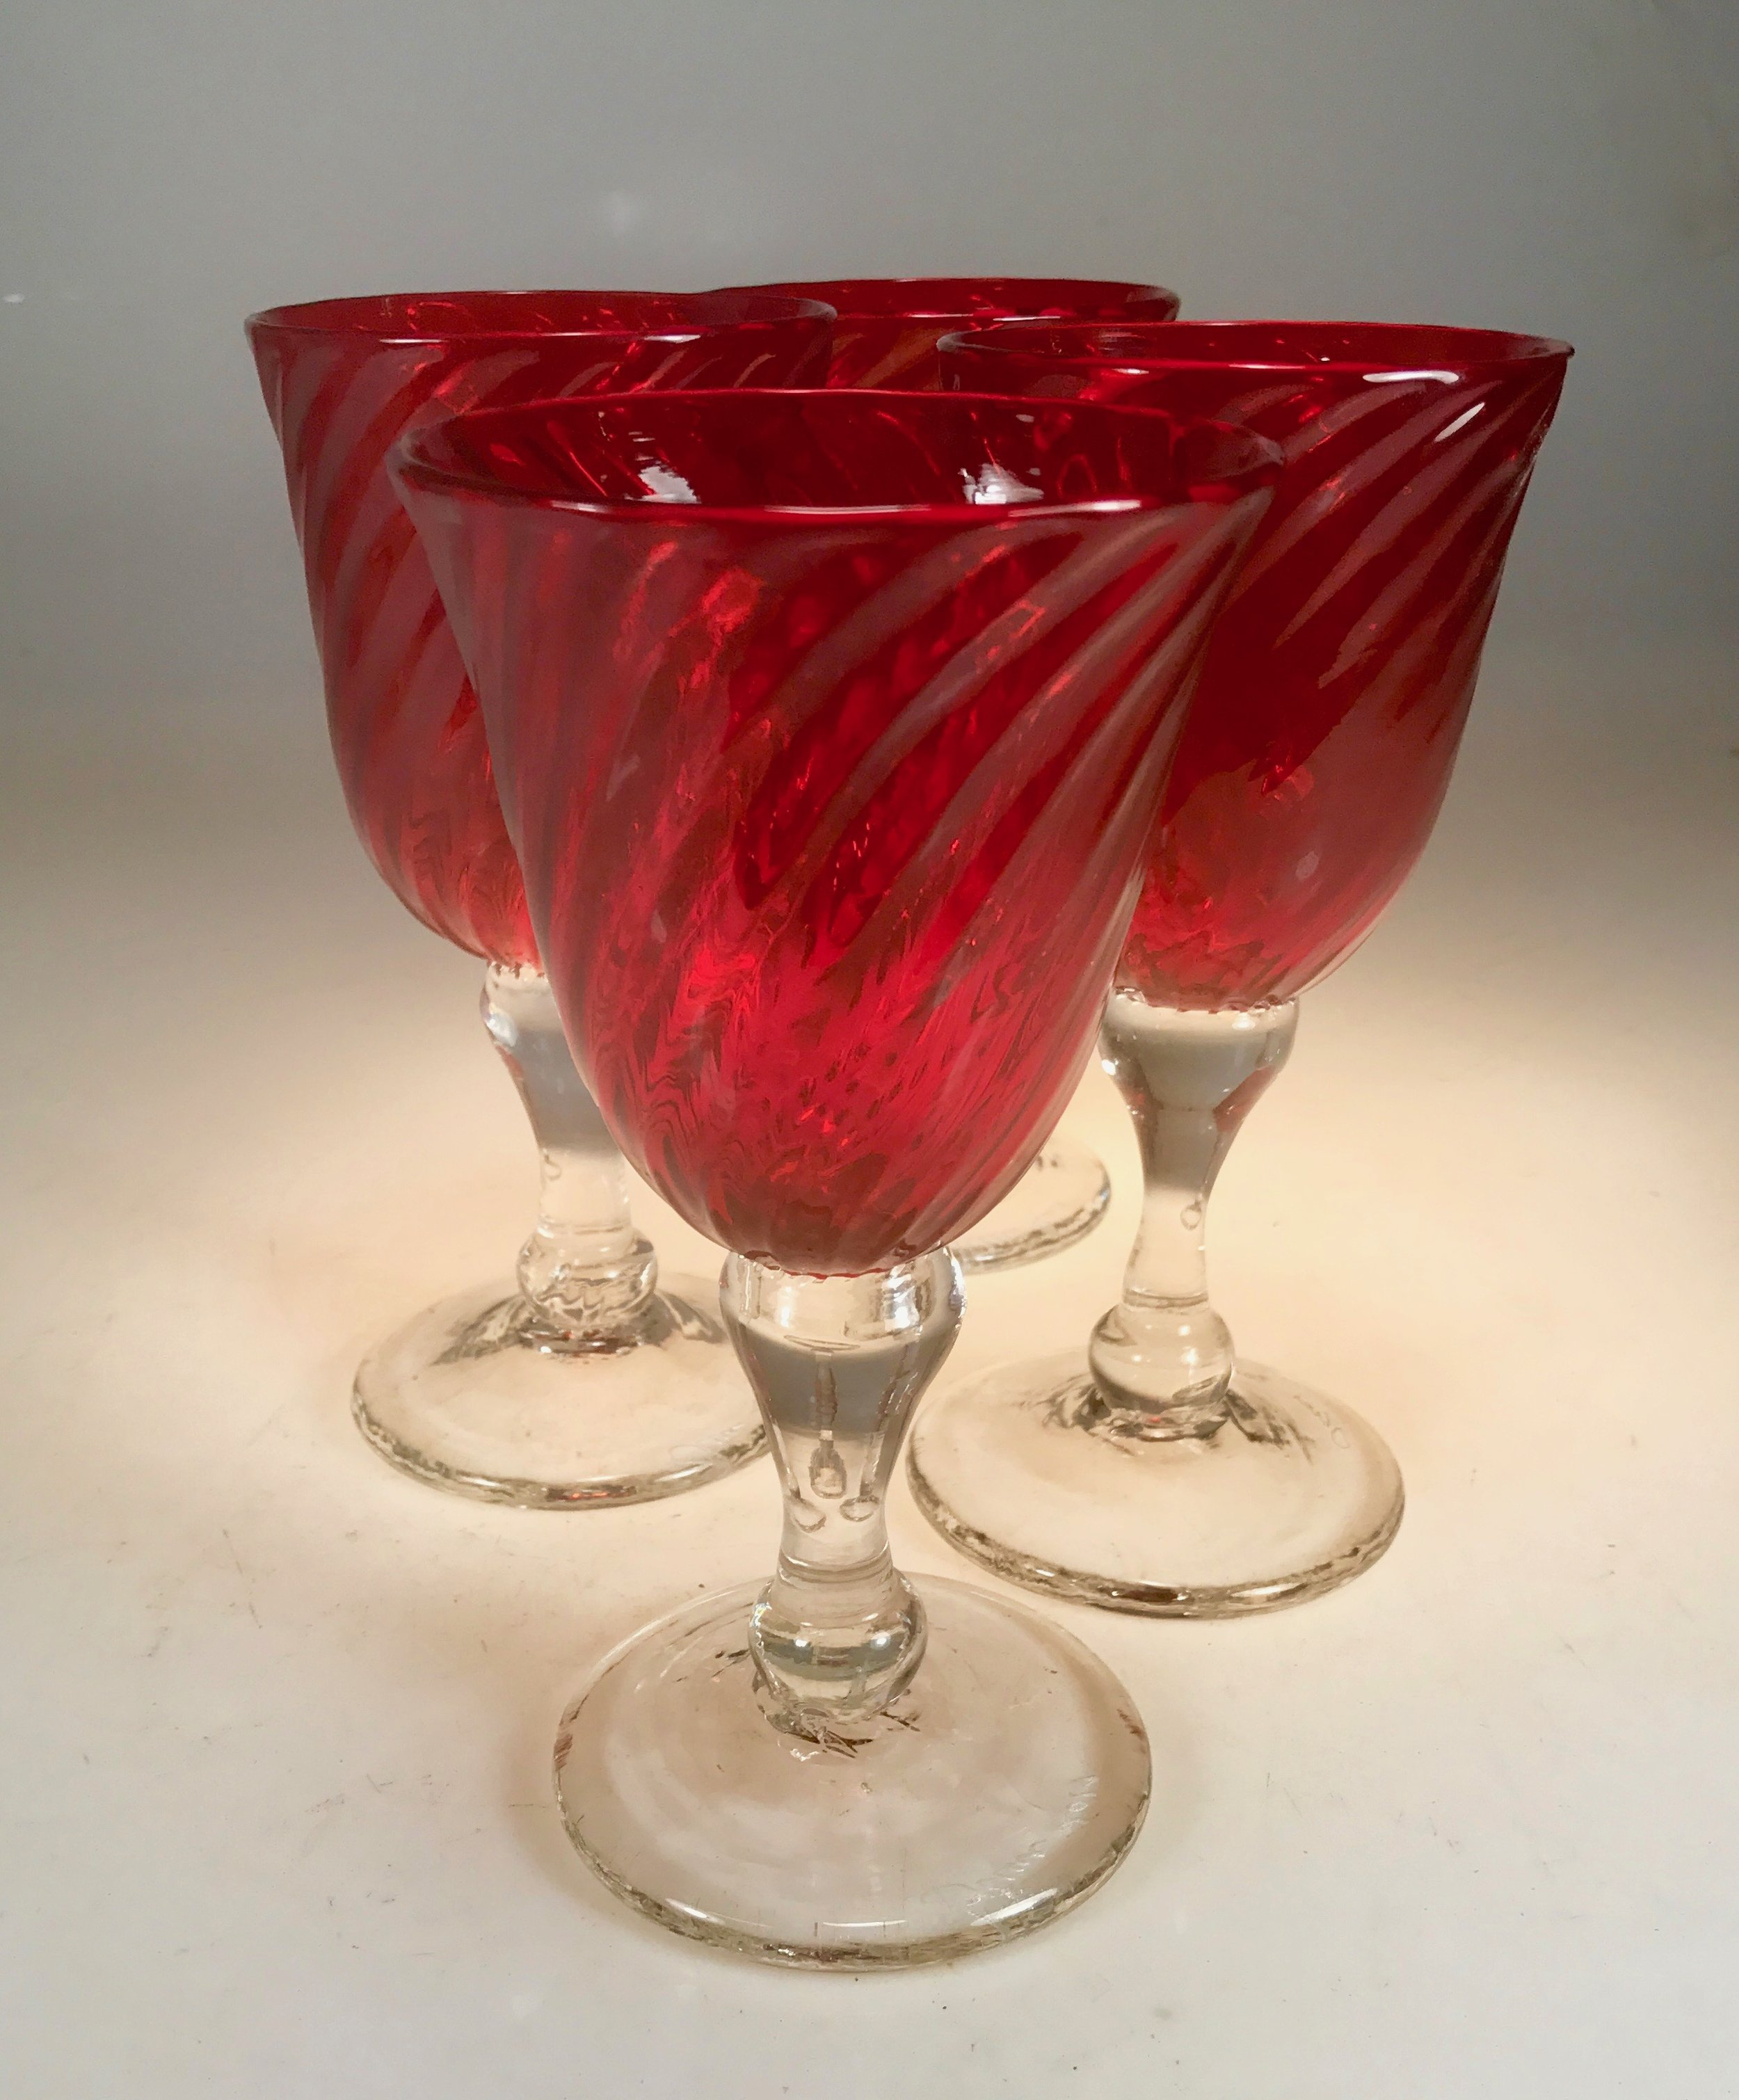 ruby glass striking real red these days.  may 2017 strini art glass